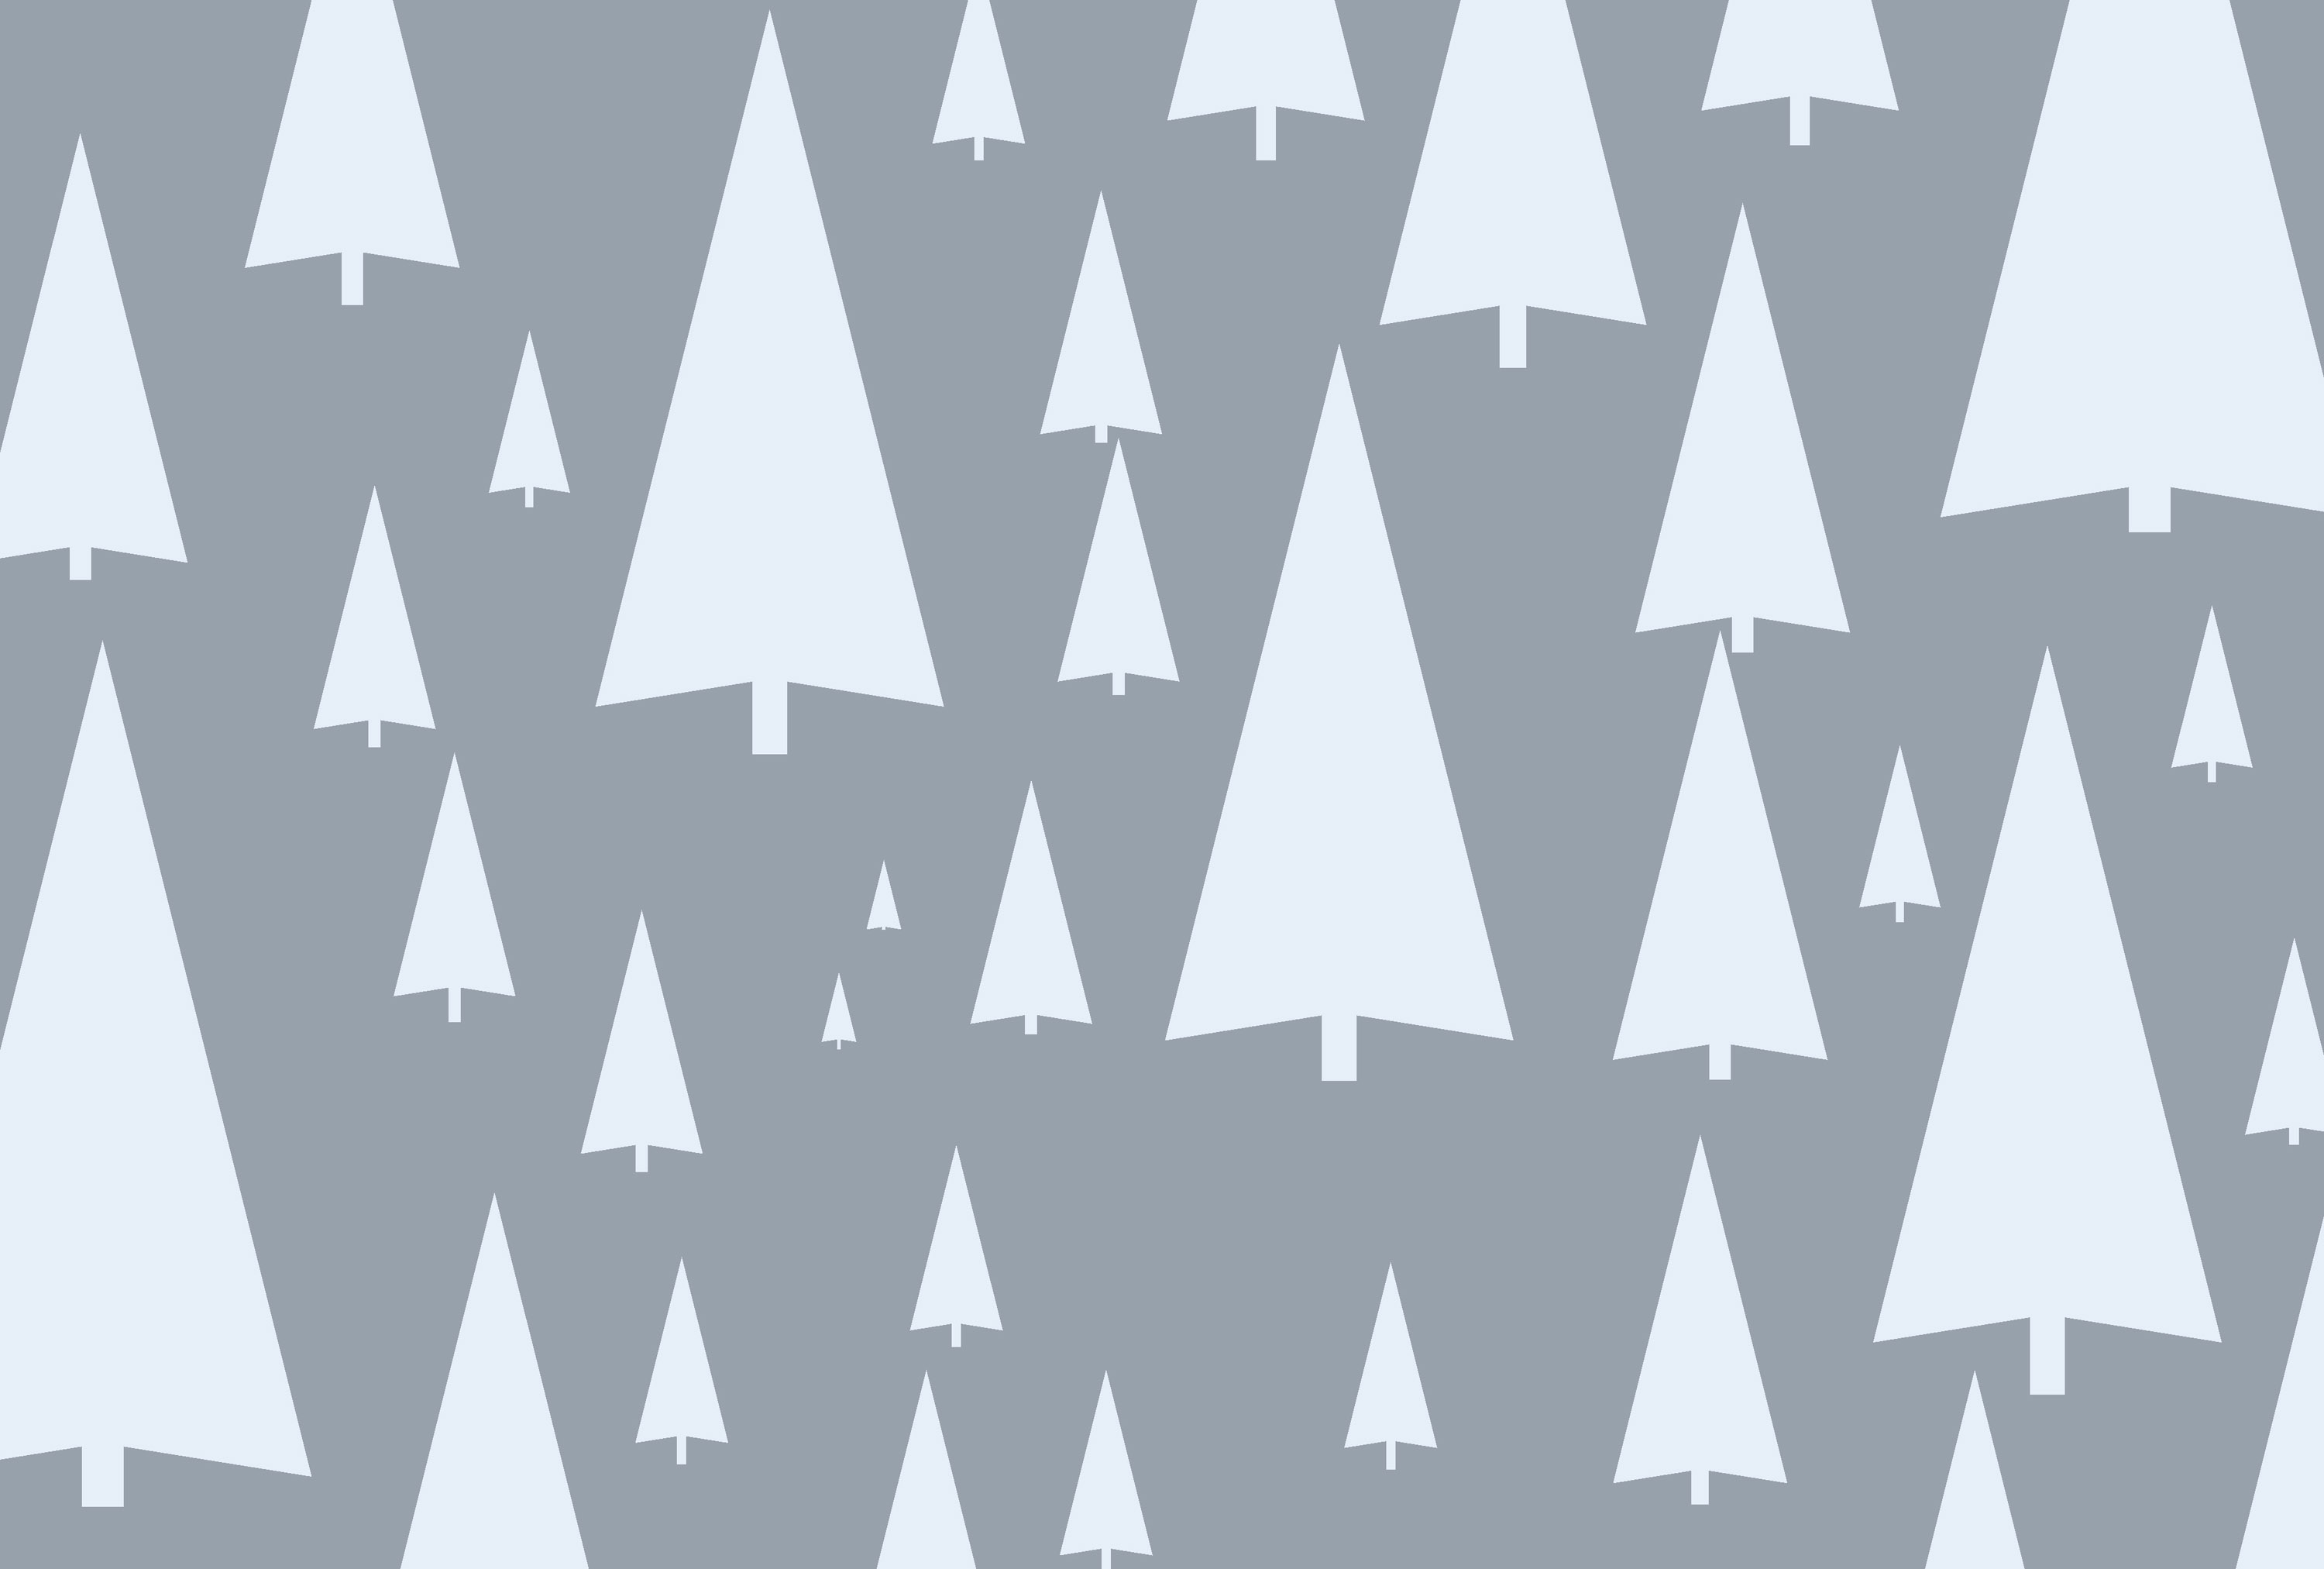 an illustrated background image of white tree shapes on a grey backdrop